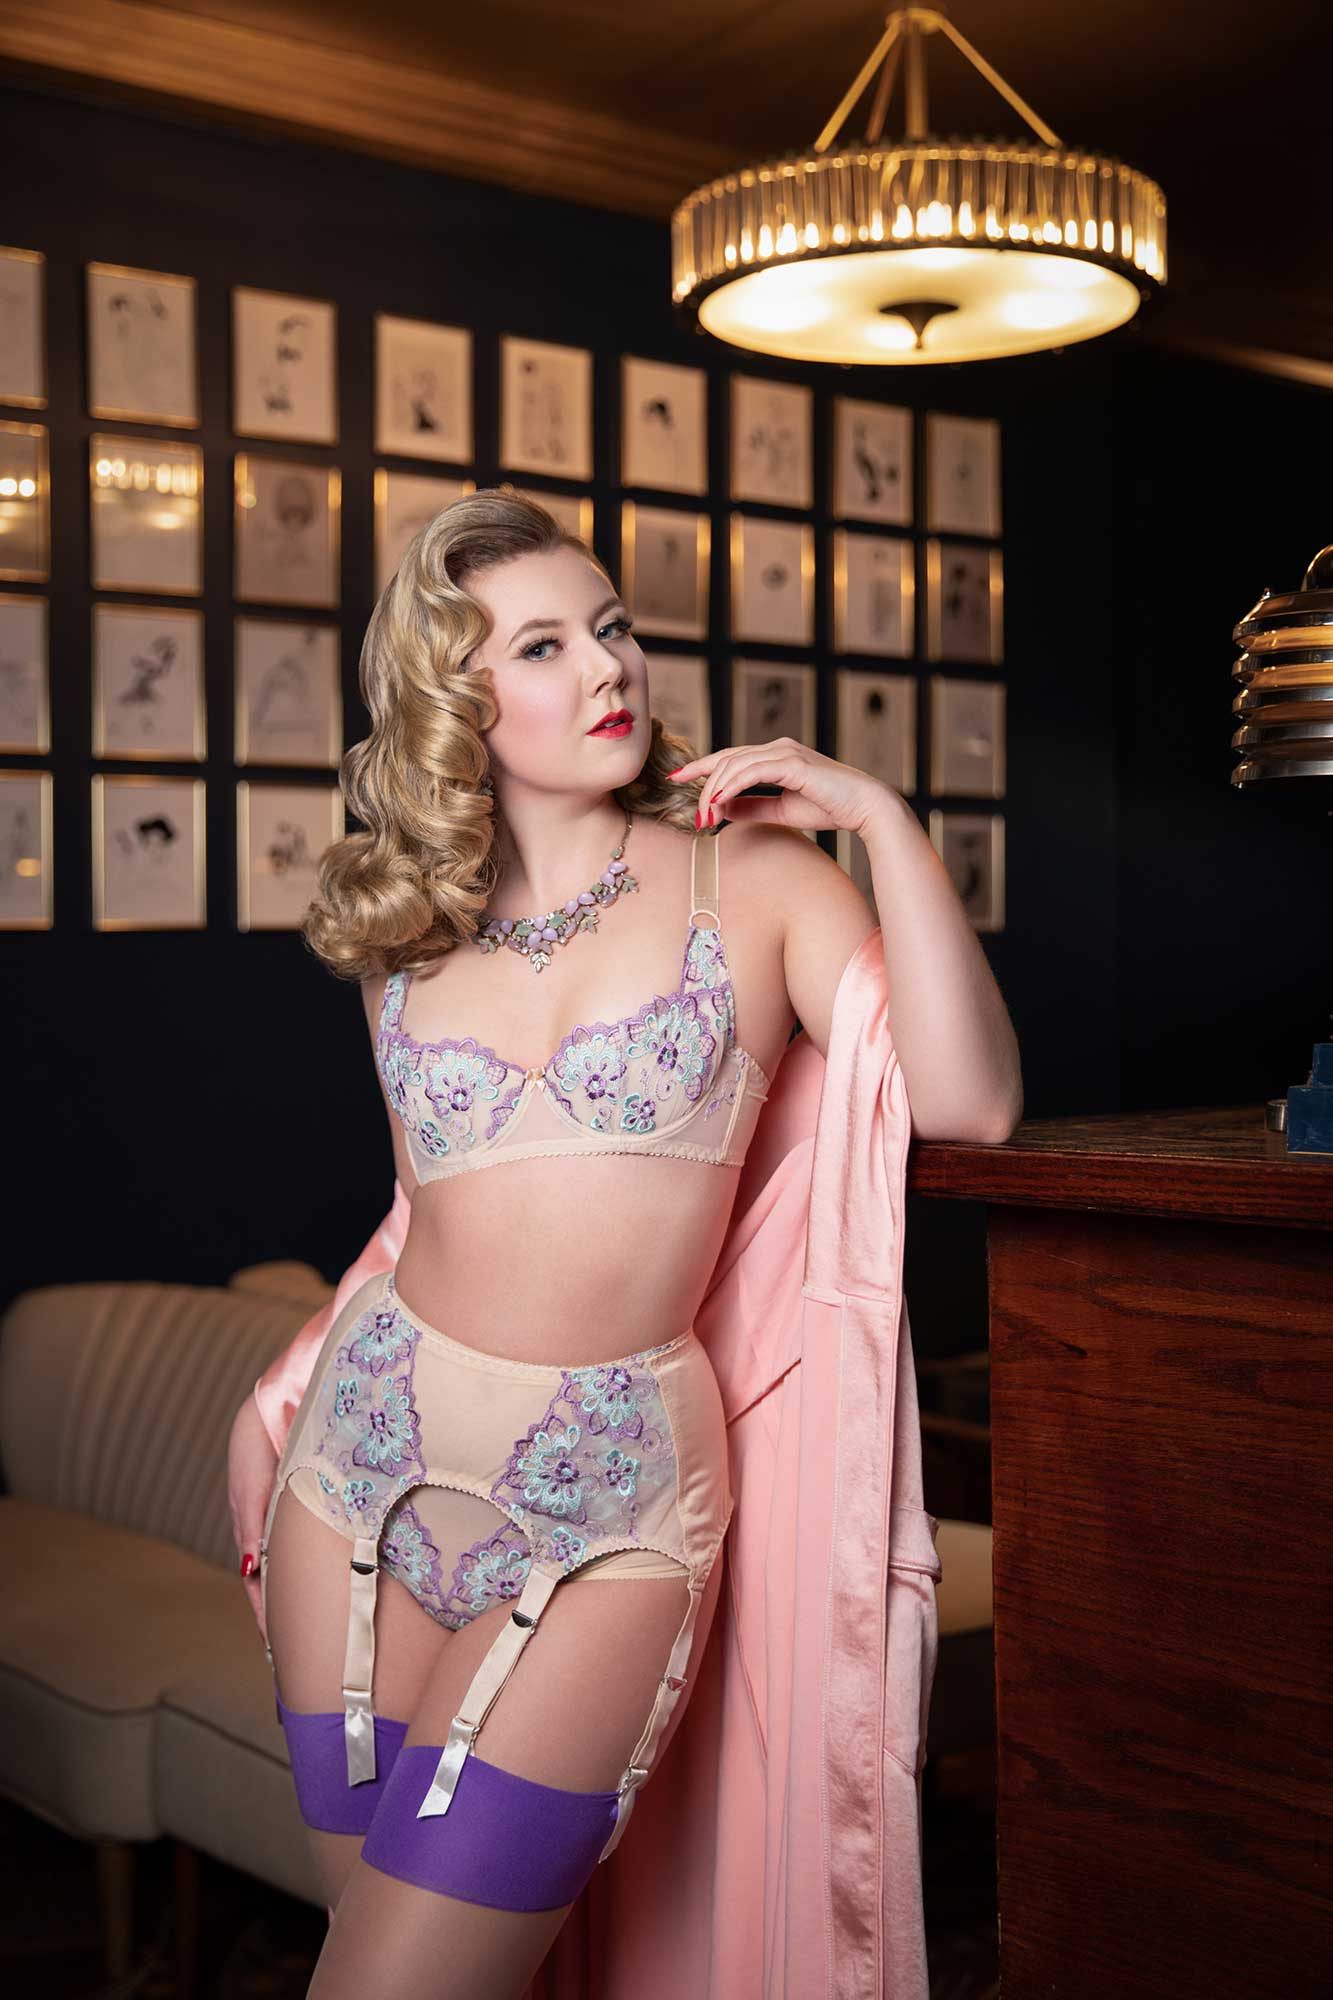 Norway pinup Penny Heartbleed Photographed at Fontaine's with hair by Missy Victory Violet and Make Up by Miss Honey Bare © UK Boudoir Photographer Tigz Rice Ltd 2019. https://www.tigzrice.com